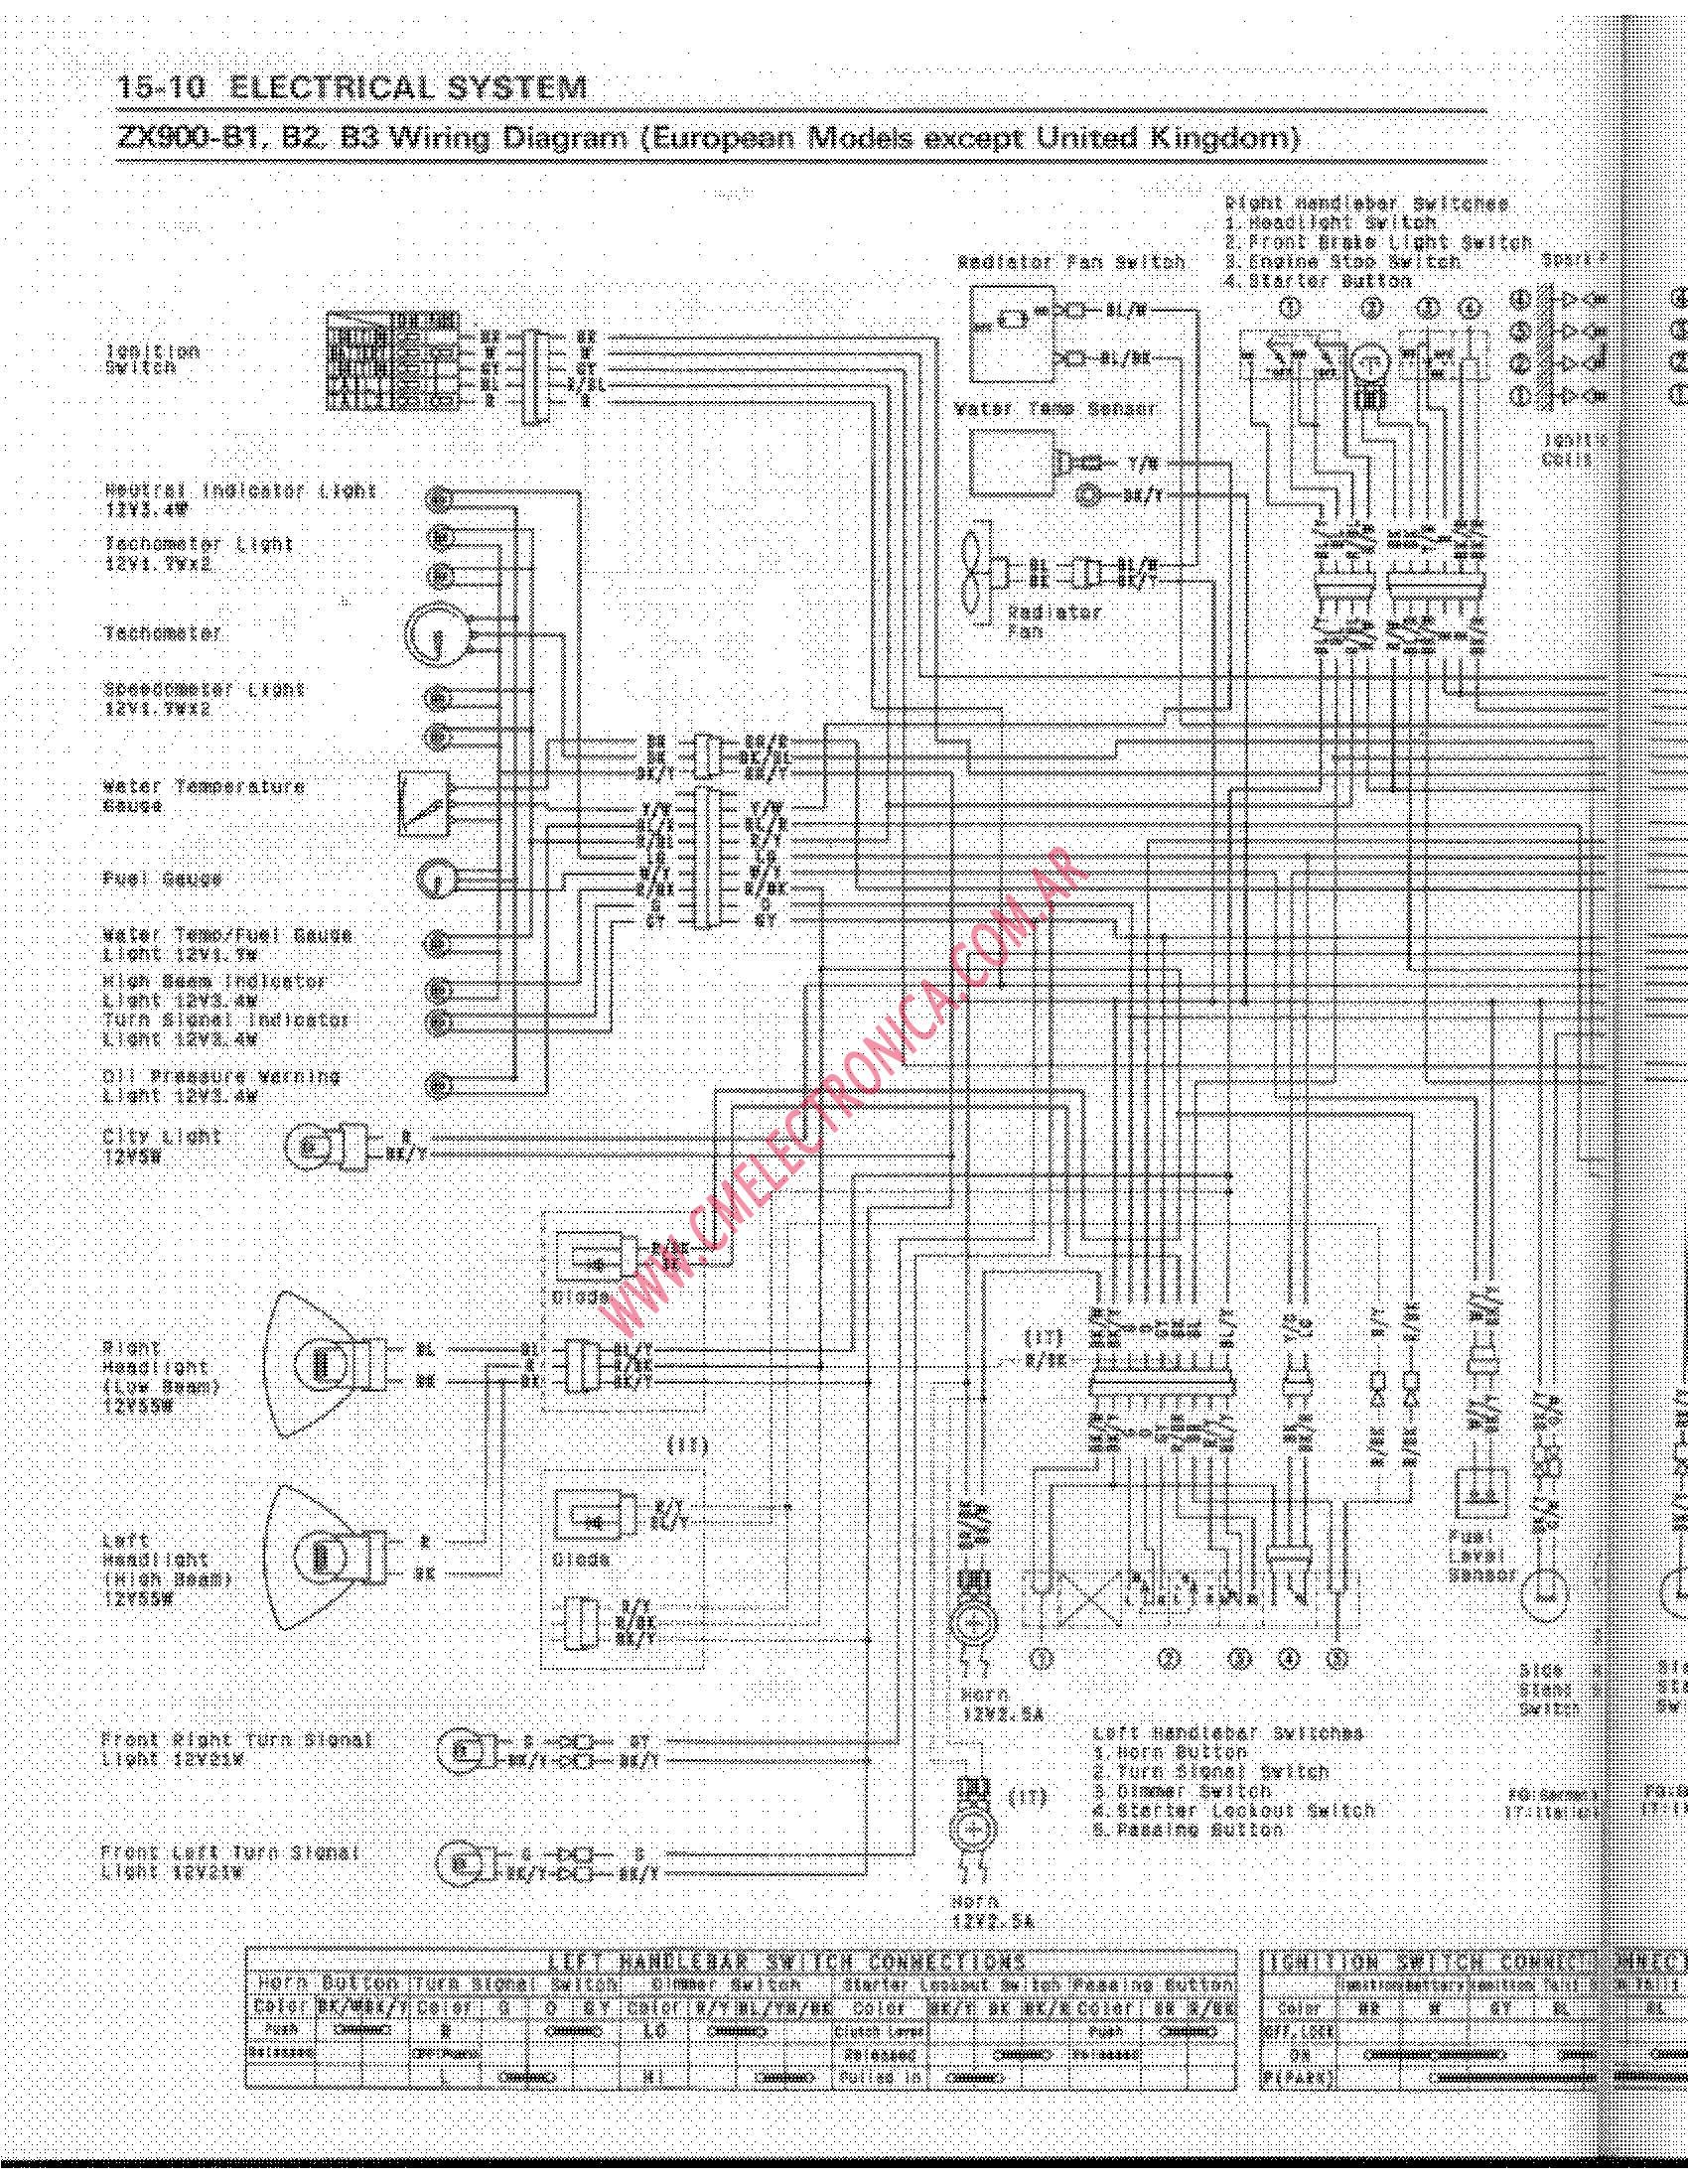 Kawasaki Mule 600 Wiring Diagram Free Download Diagrams 610 Schematic 400 Atv Photos For